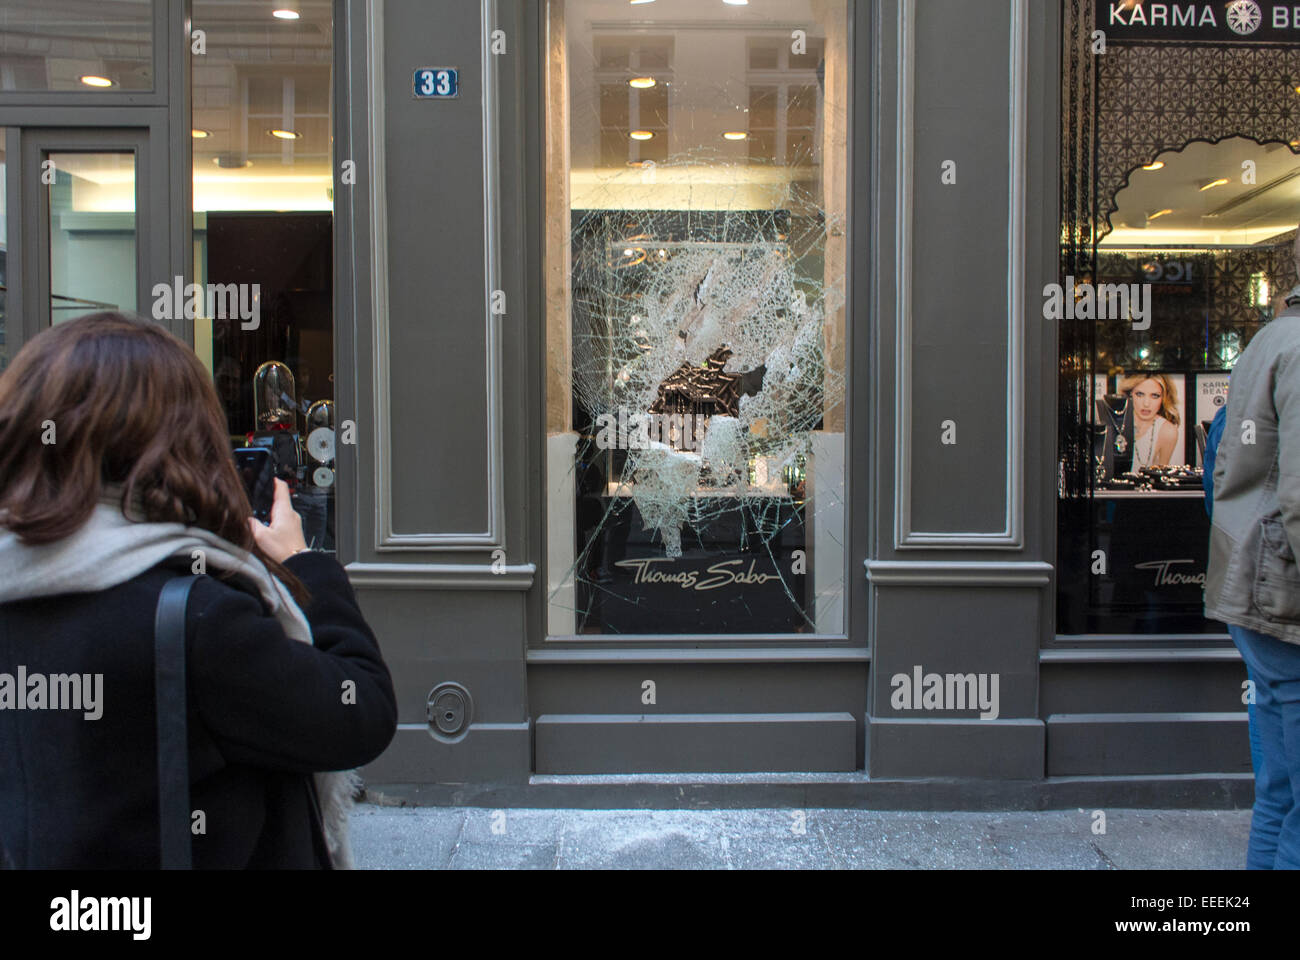 paris france crime scene on street attempted jewelry